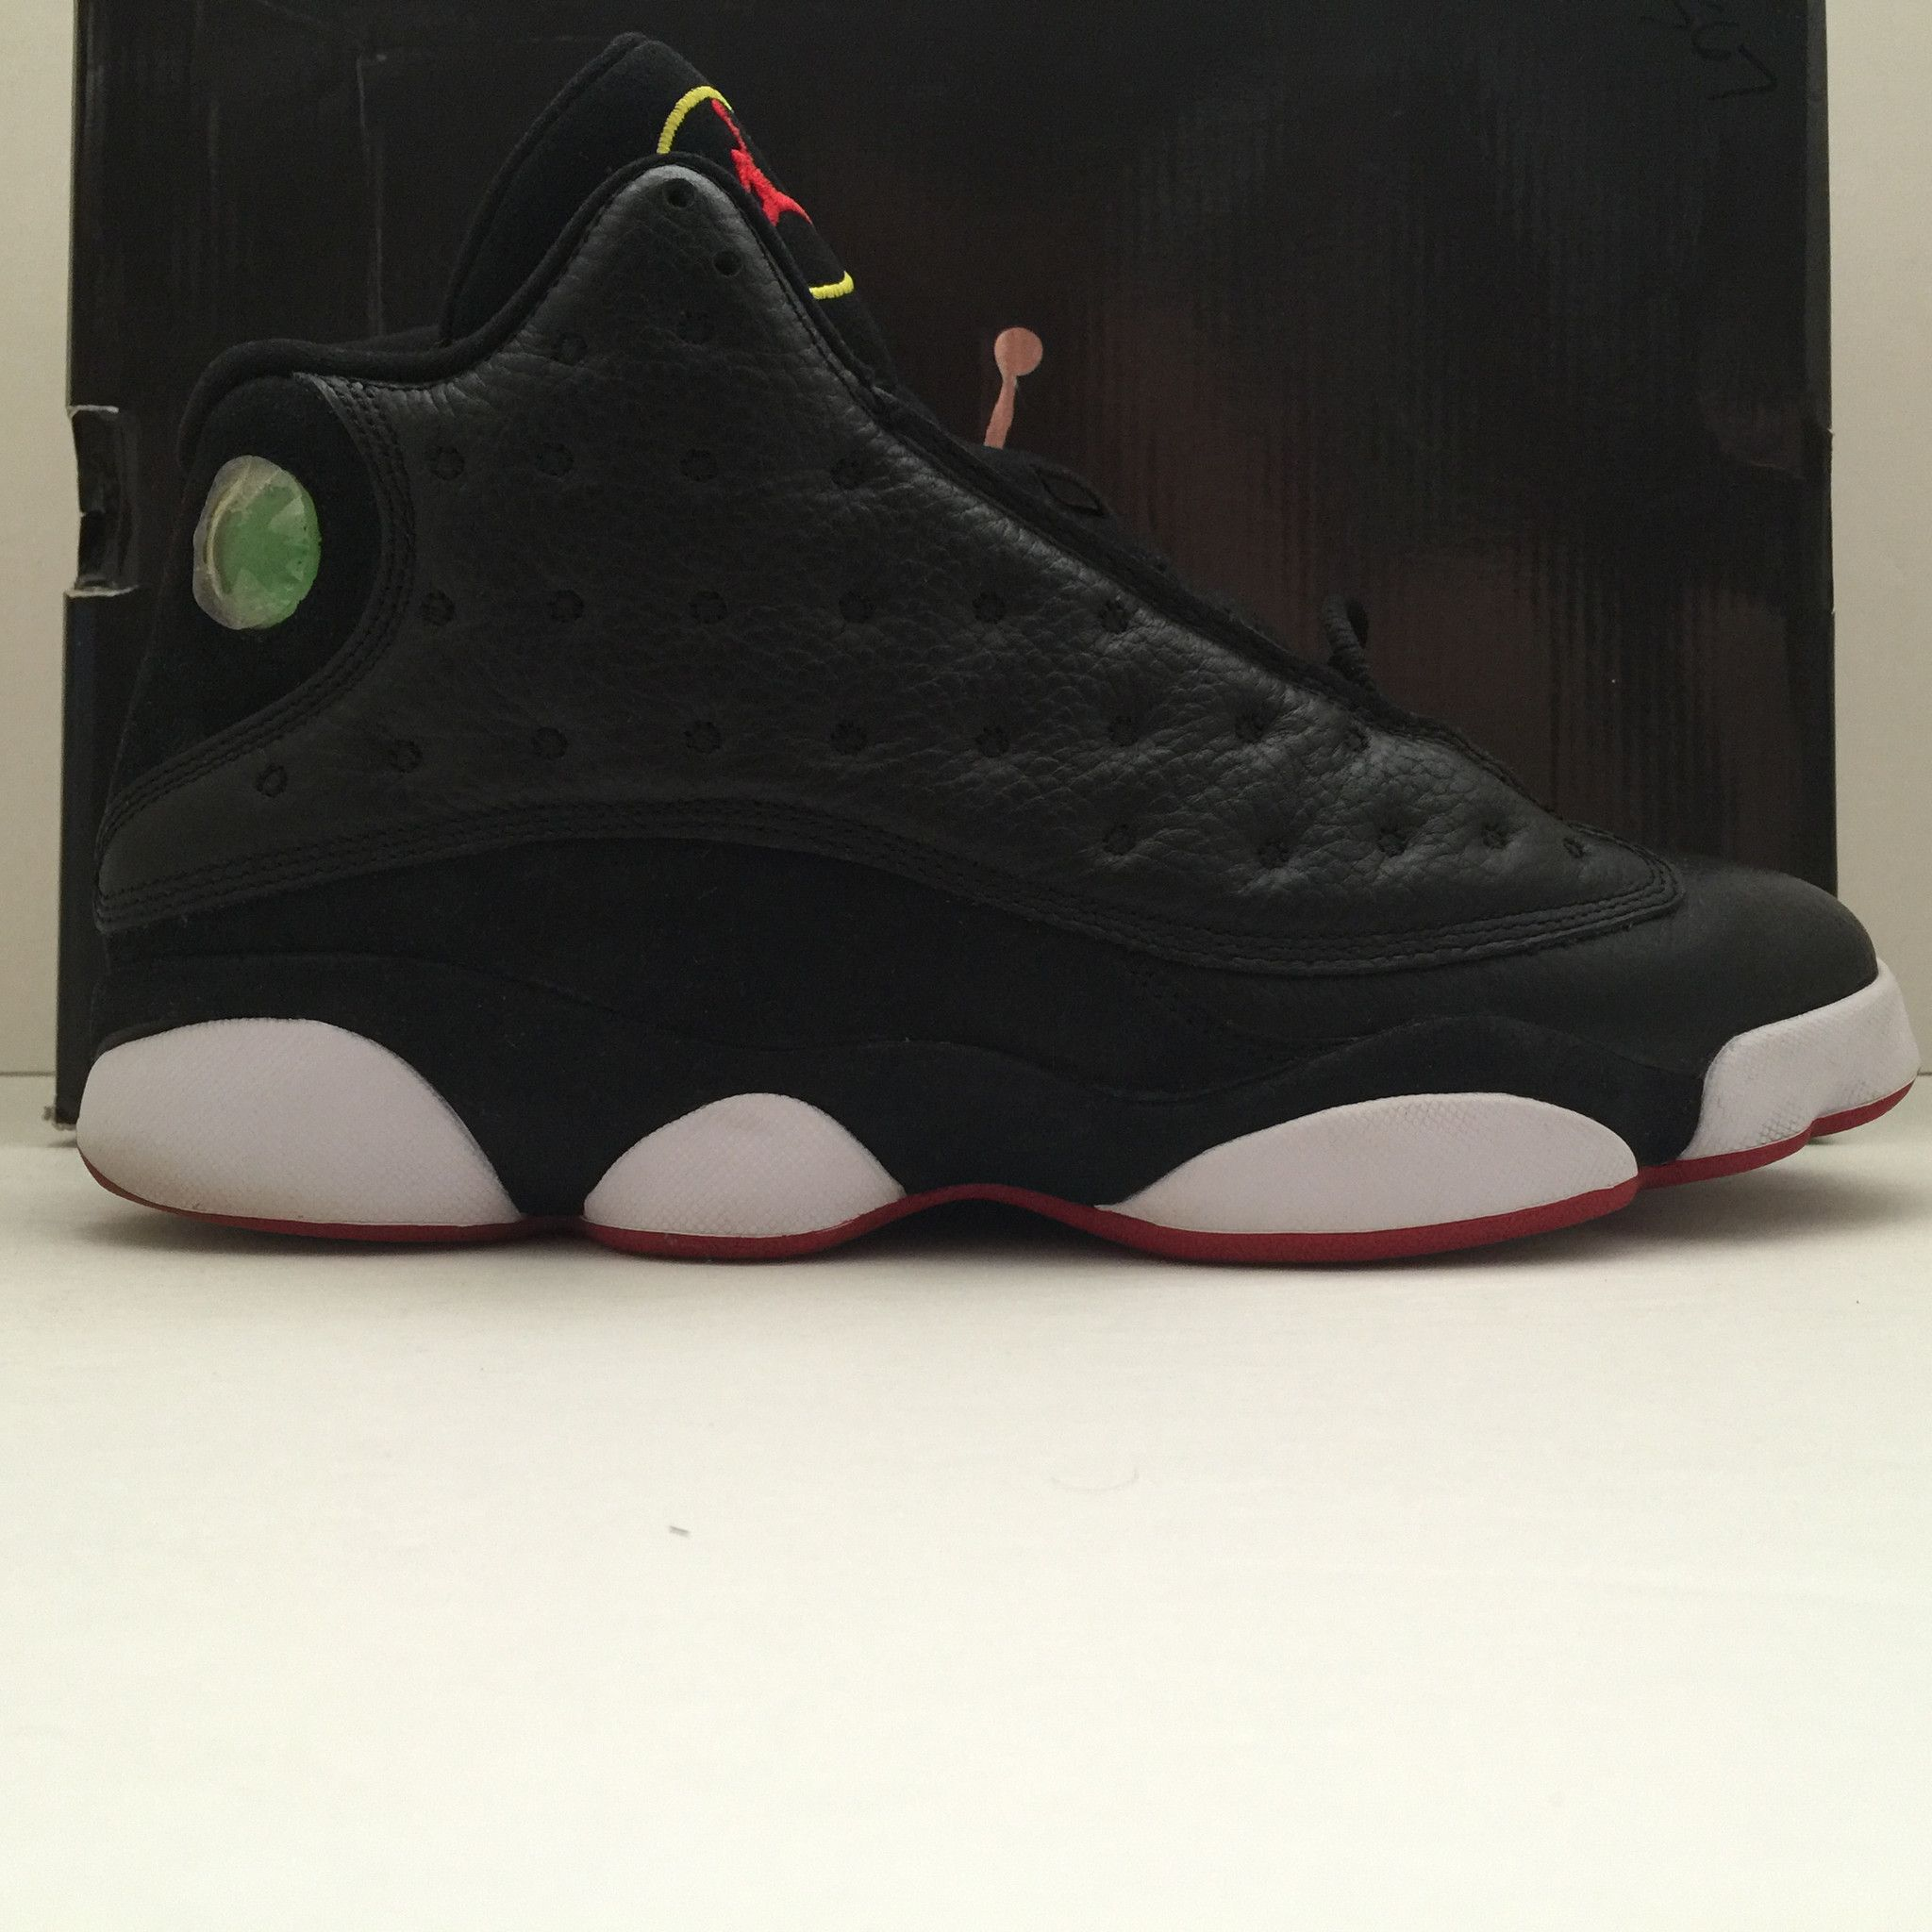 2bd79142c44 Name: Jordan 13 Playoff Size: 9 Condition: Used | Great Condition | OG Box  Style Code: 414571 001 Year: 2011